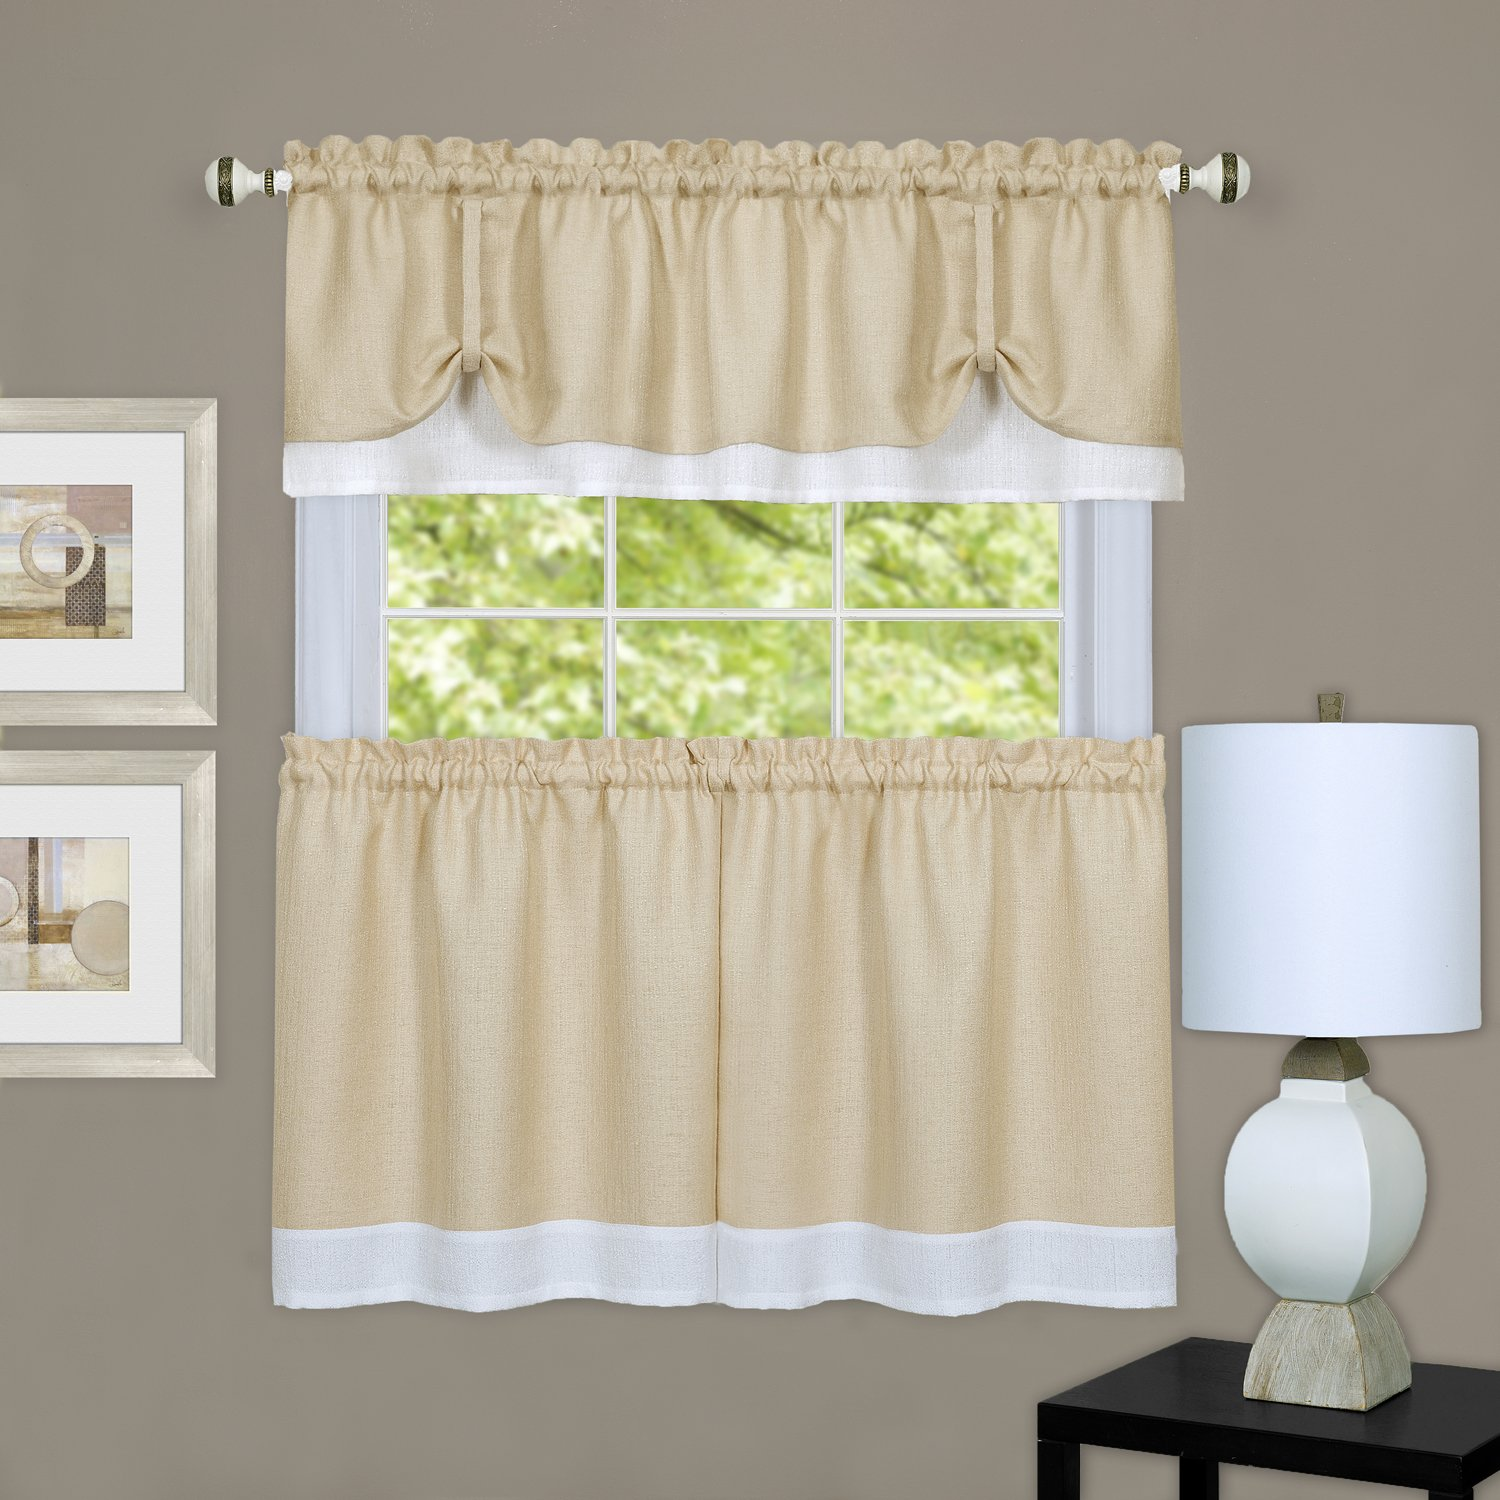 "Achim Home Furnishings DRTV36TW12 Darcy Window Curtain Tier Pair & Valance Set, 58"" x 36"" with 14"" Valance, Tan/White, Pair, Tan & White"